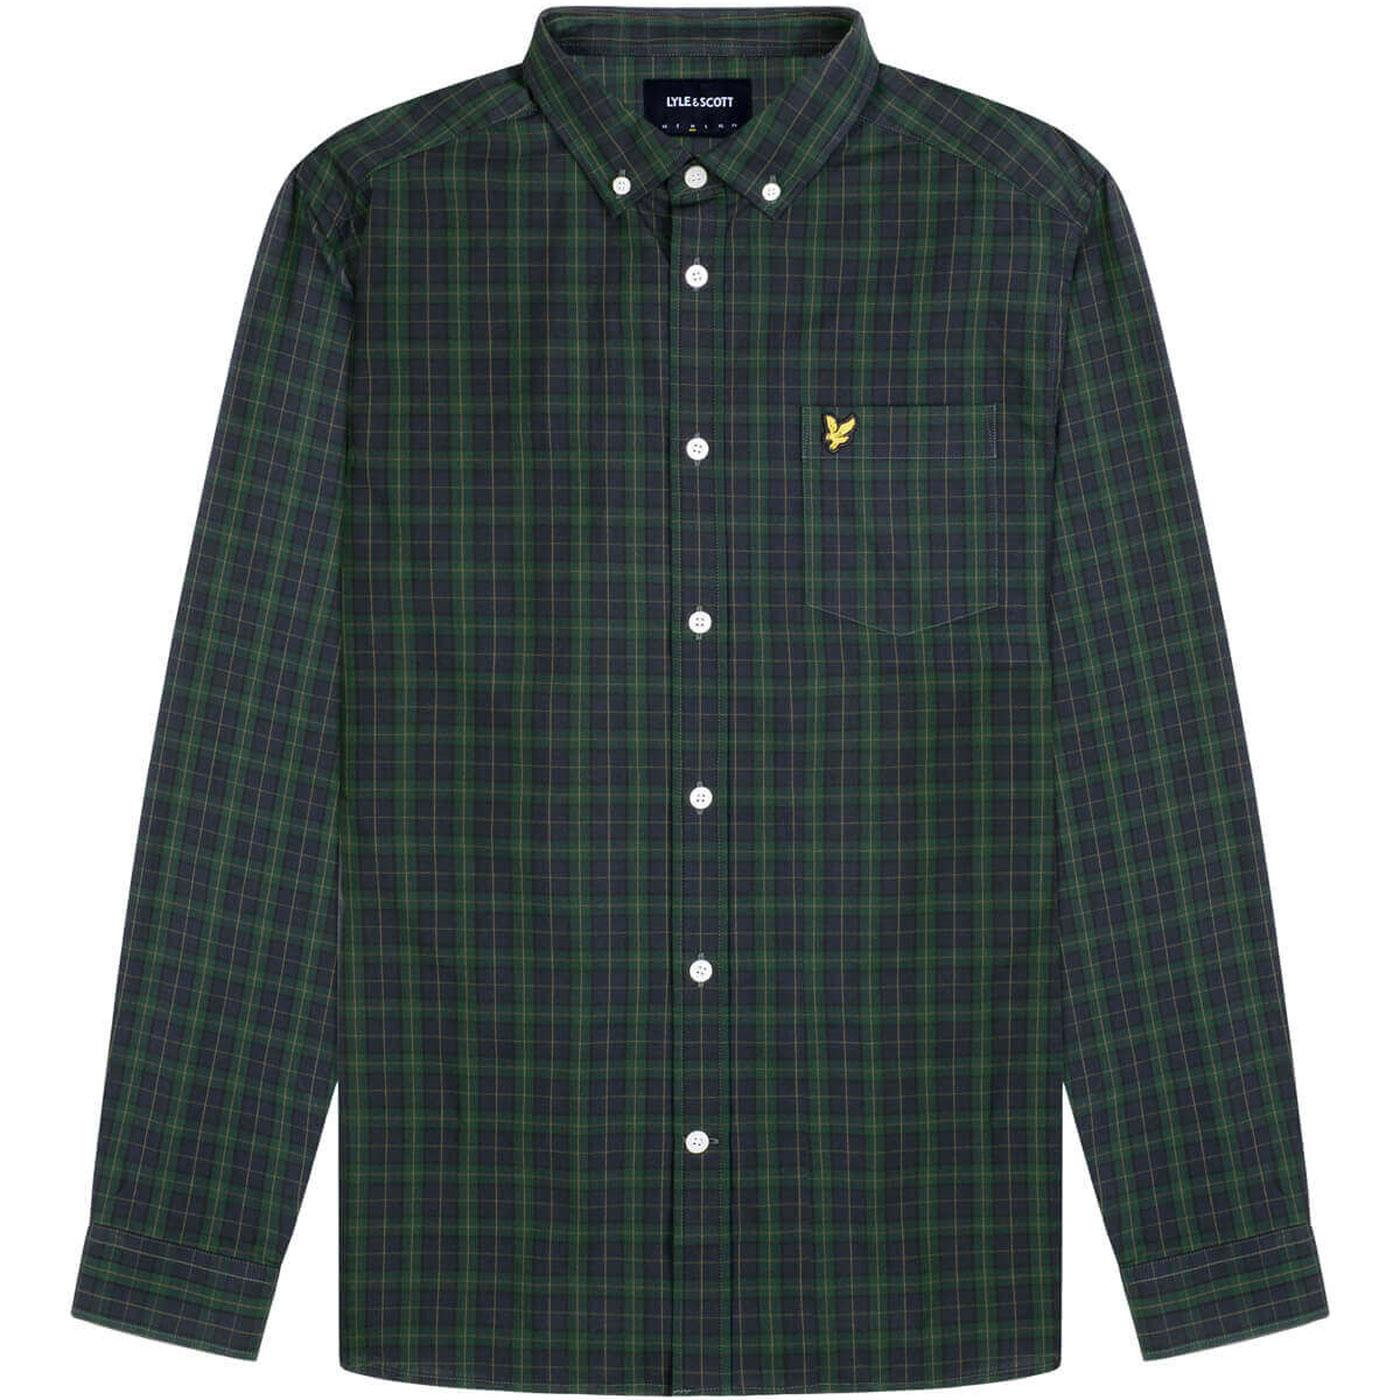 LYLE & SCOTT Retro Mod Tartan Shirt in Navy/Green